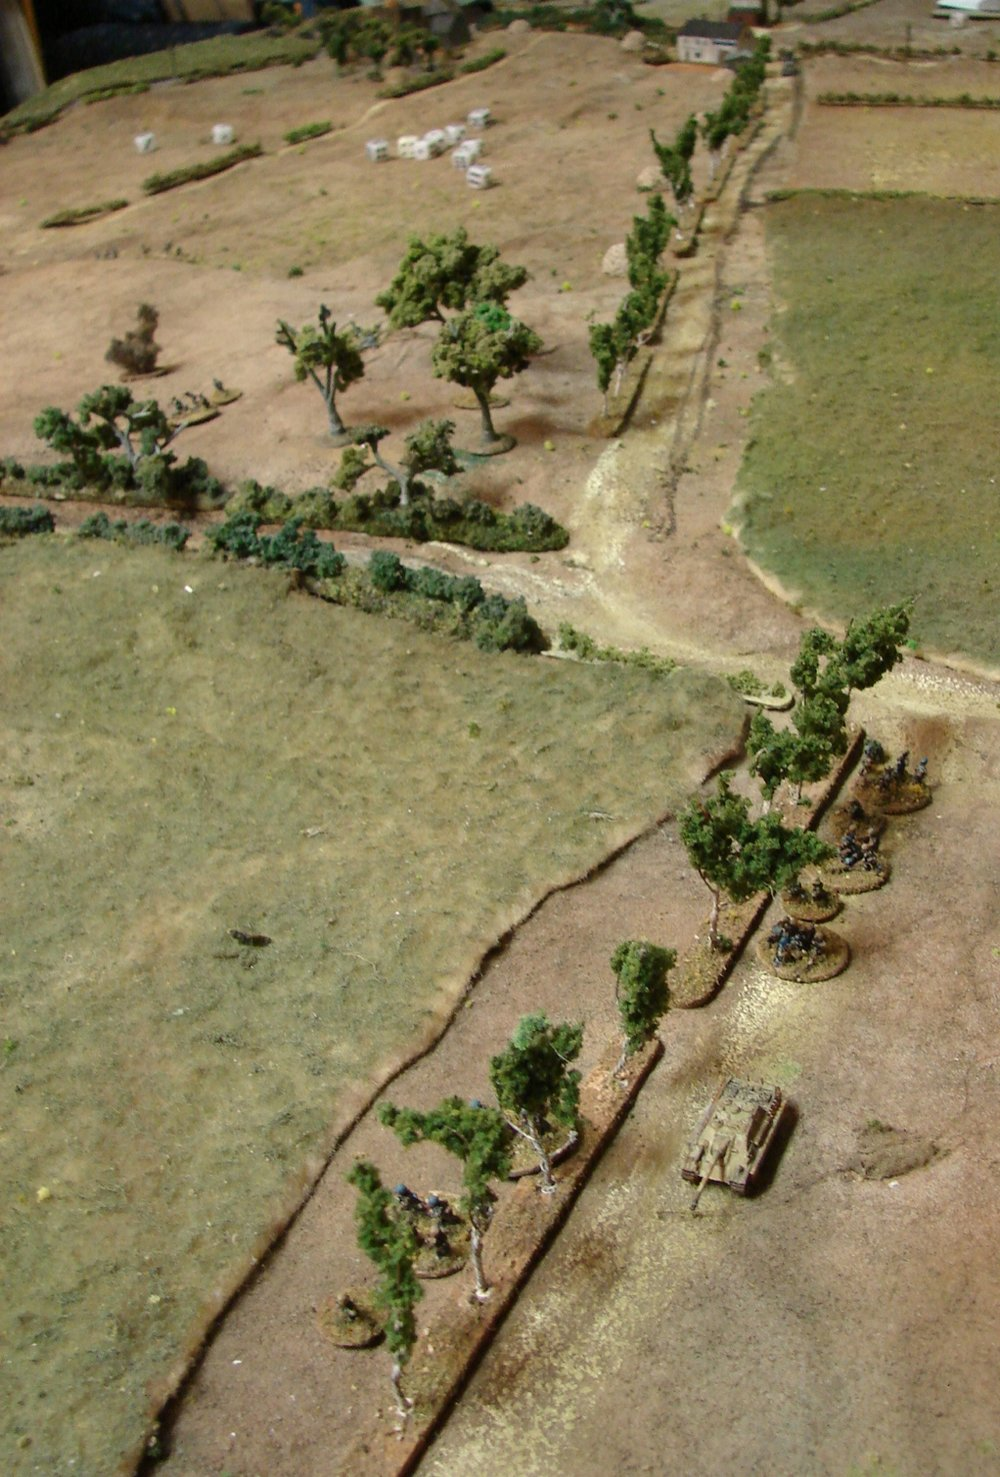 Kossack Escapes Along With Some Fleiger Troops